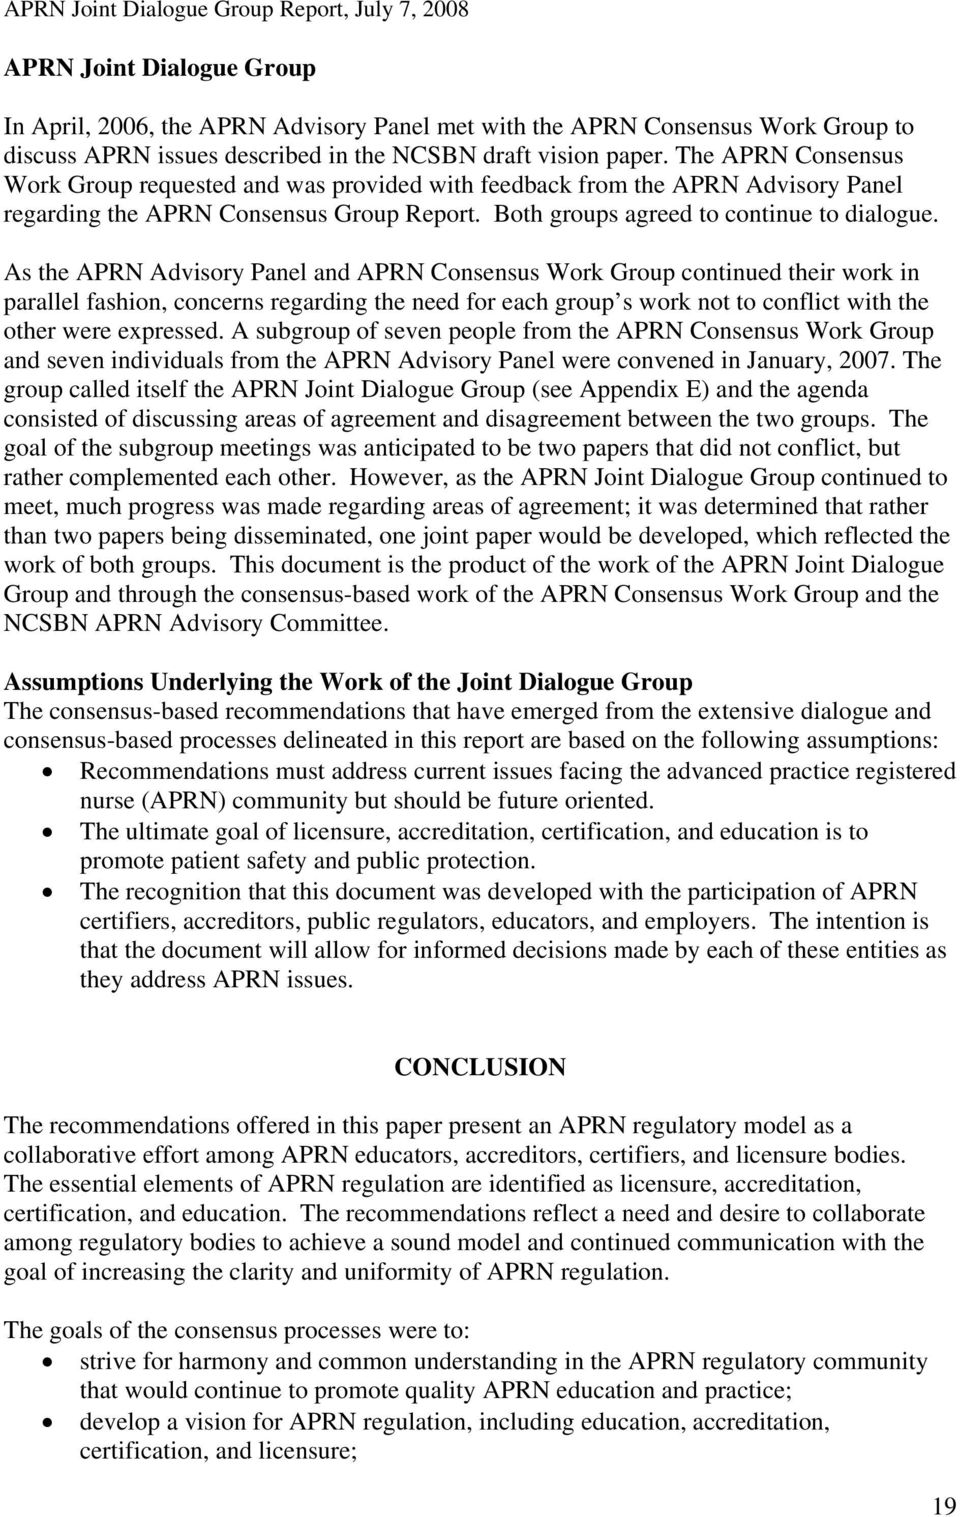 As the APRN Advisory Panel and APRN Consensus Work Group continued their work in parallel fashion, concerns regarding the need for each group s work not to conflict with the other were expressed.